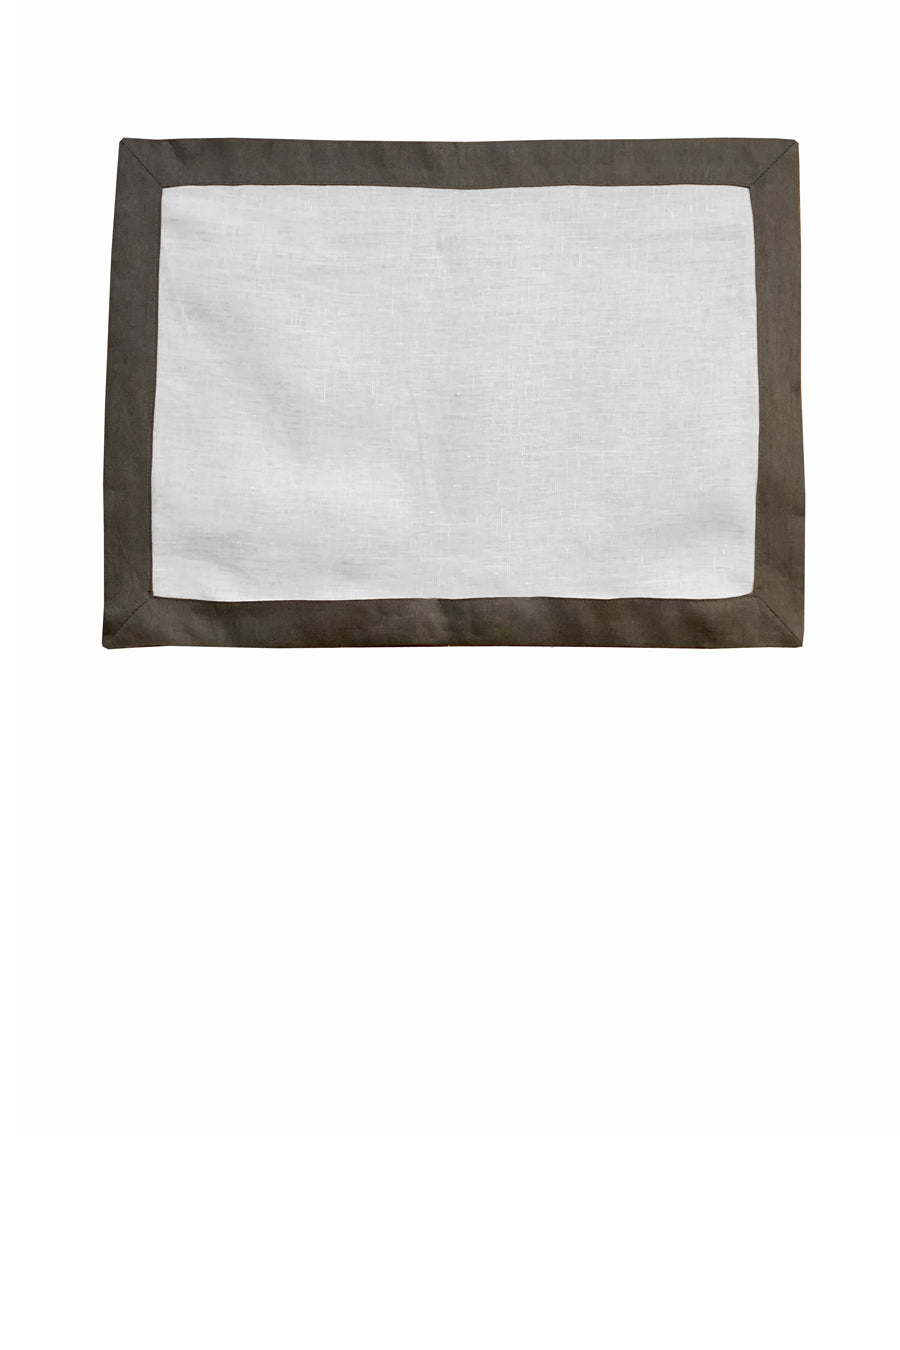 Set of 4 Contrast Border Placemat Grey/White